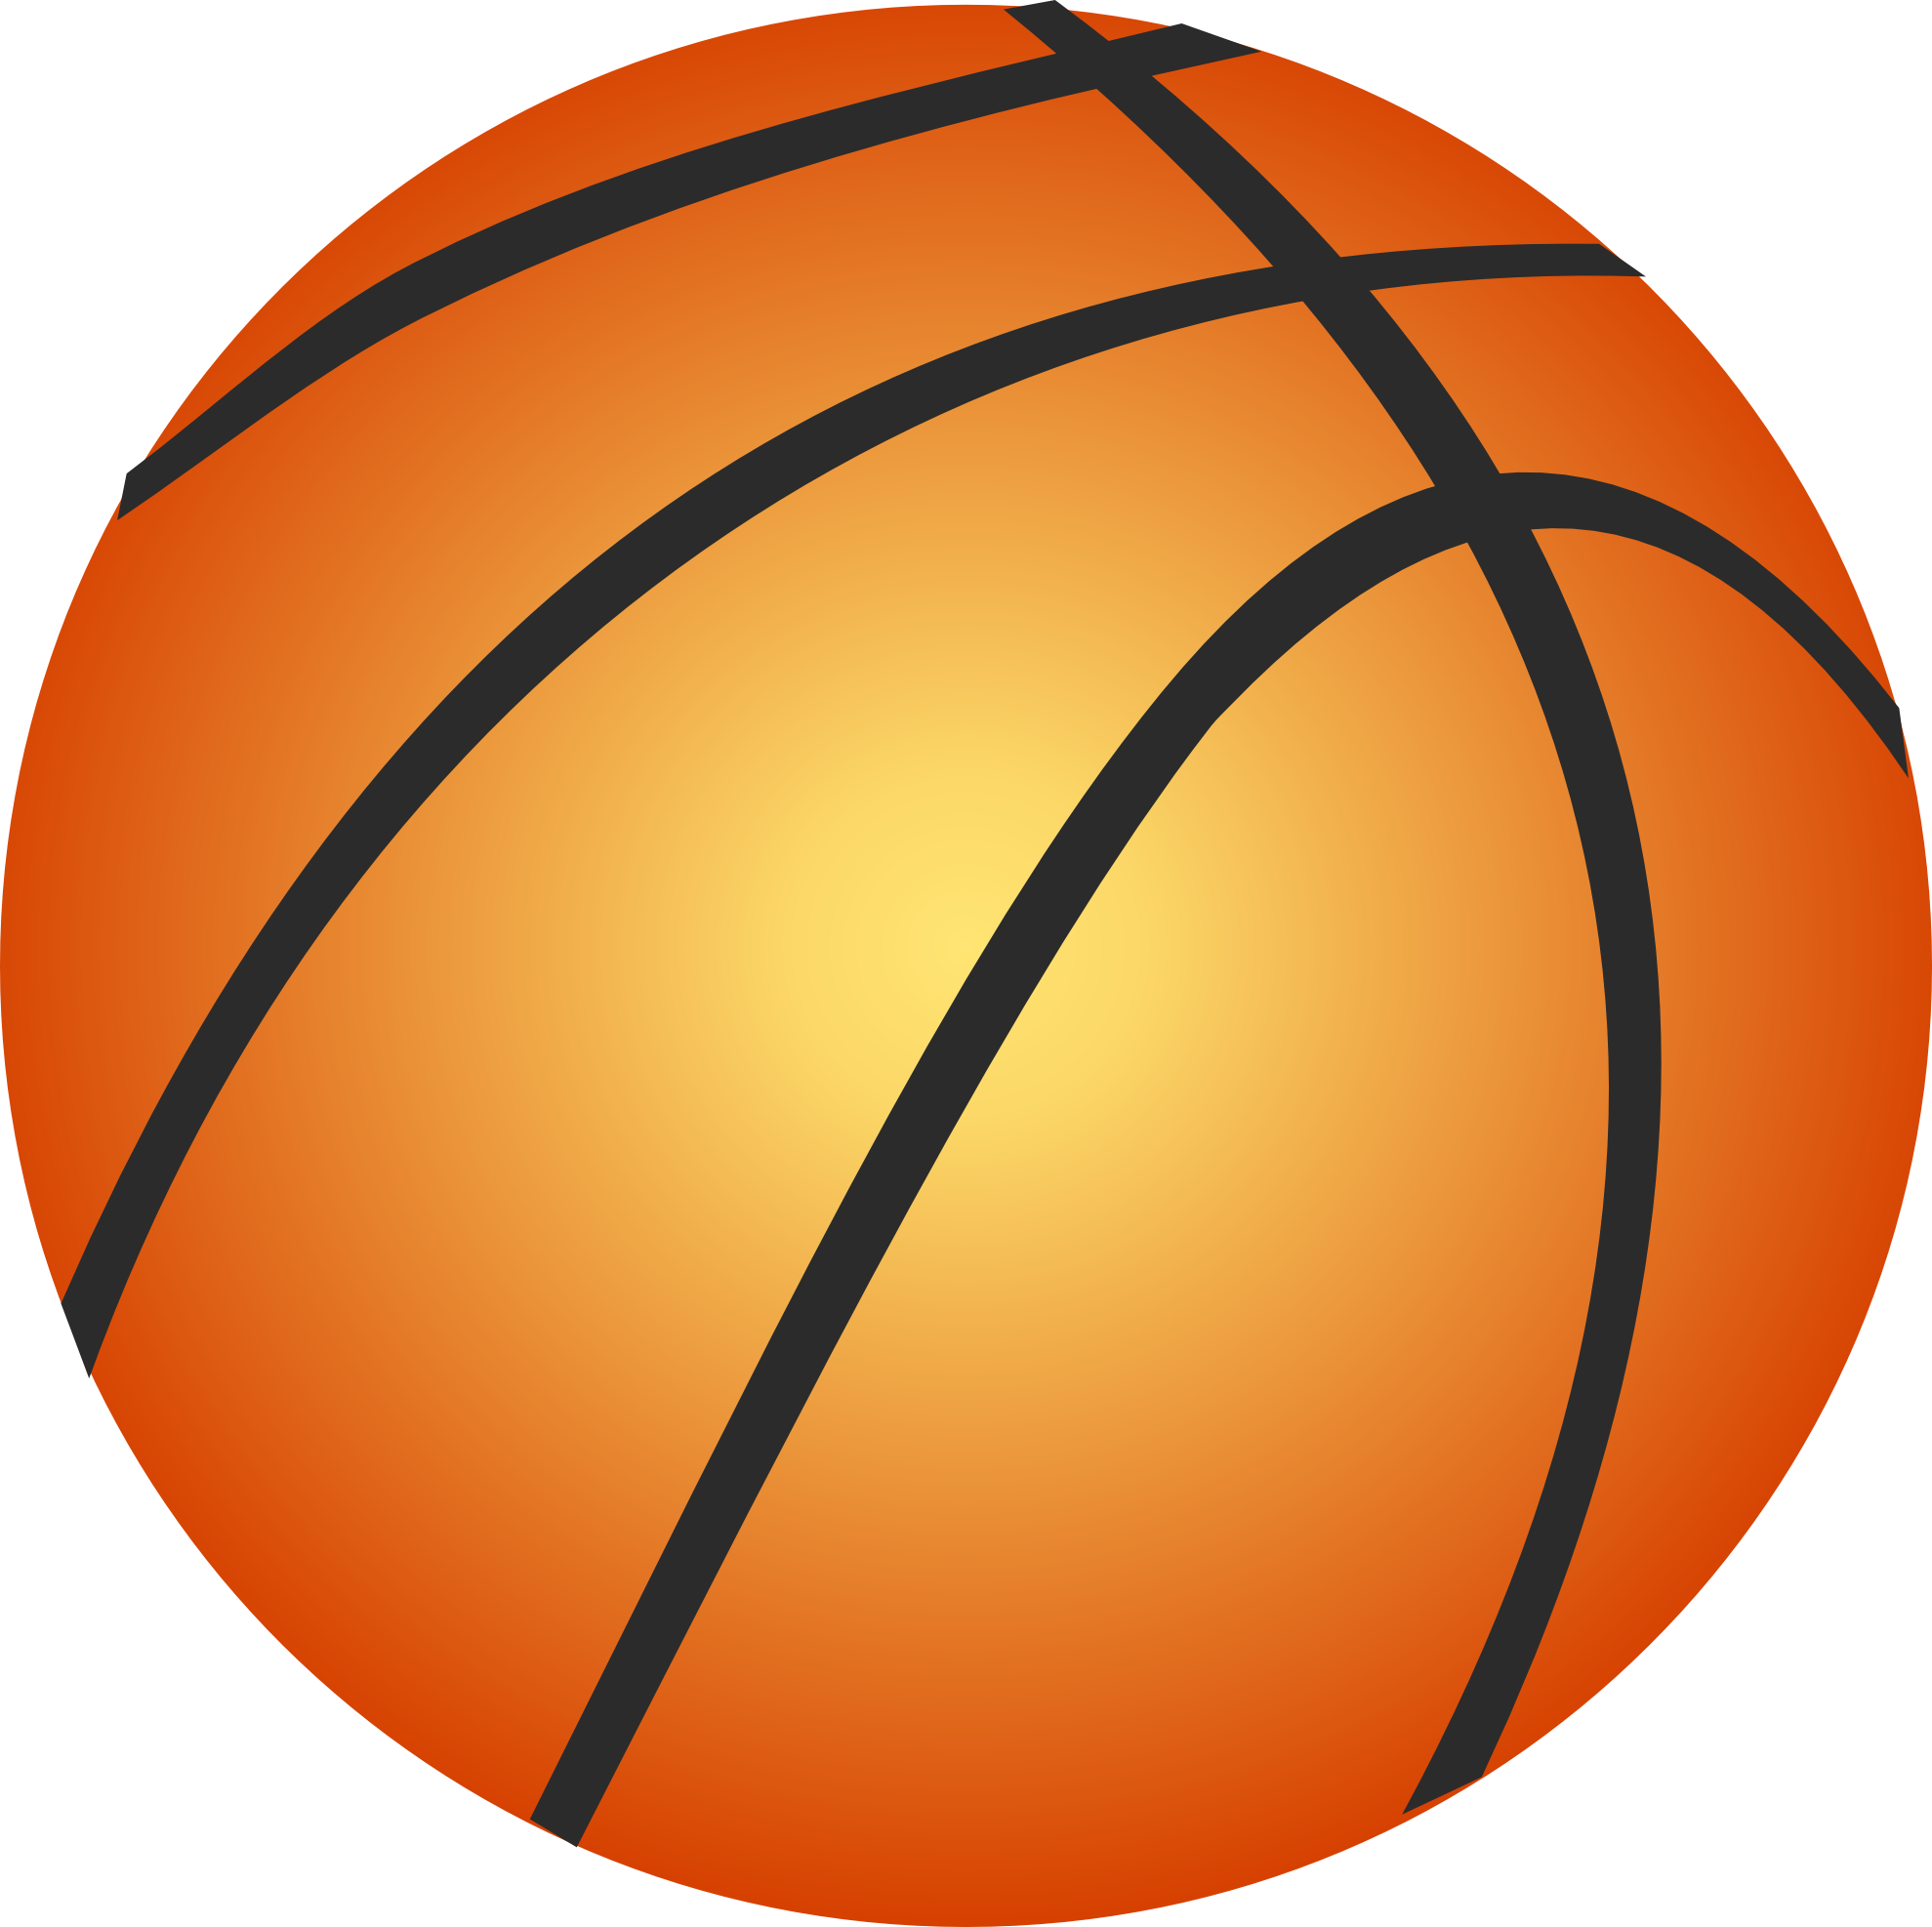 Basketball Google Search Basketball Clipart Basketball Ball Basketball Net